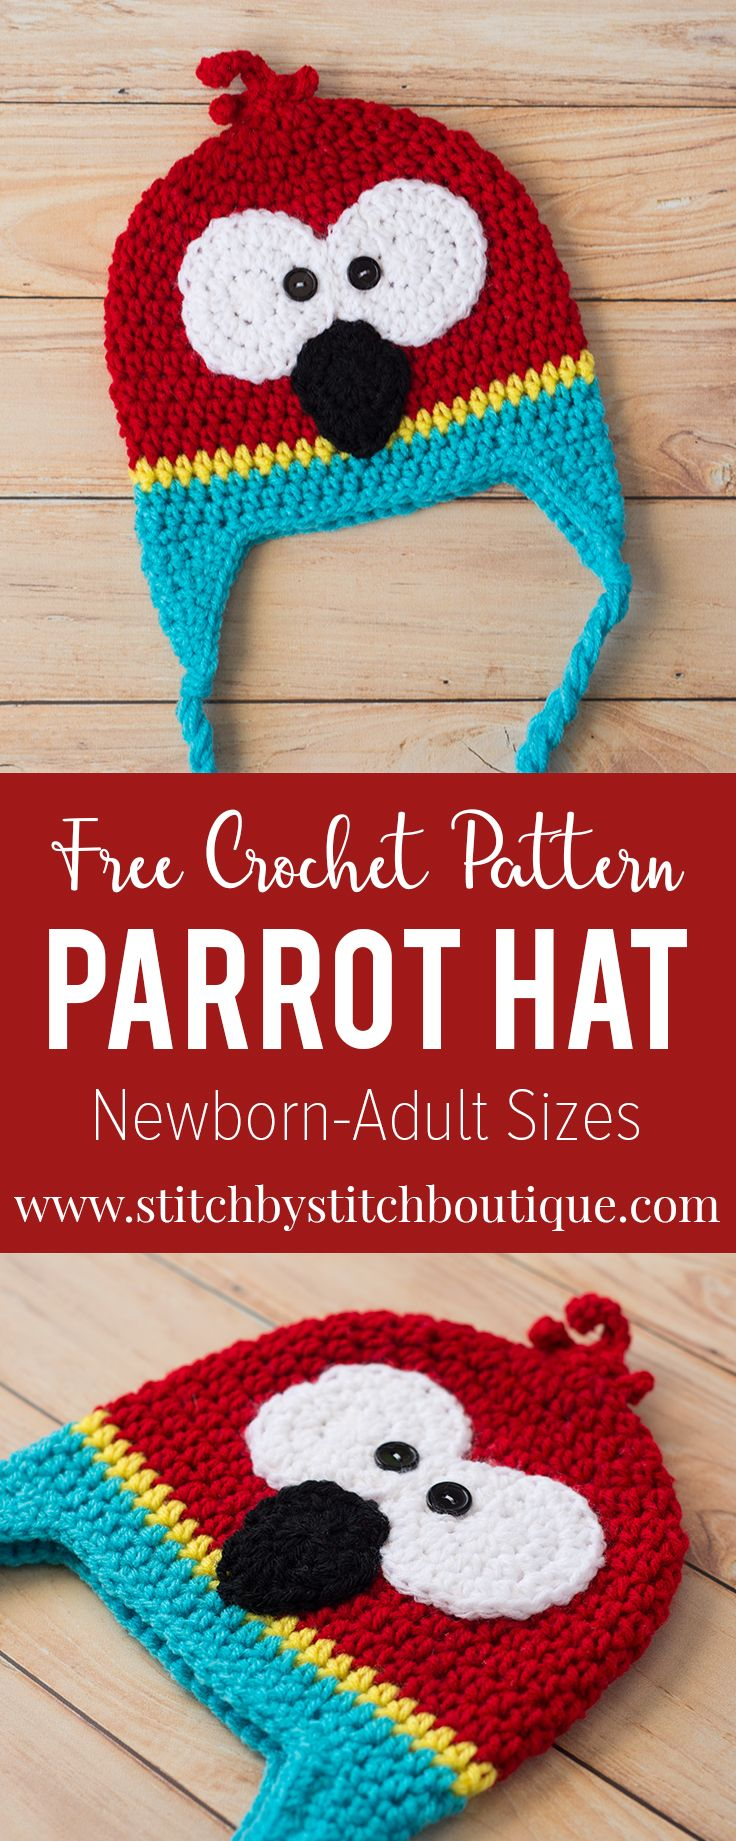 Dive right into your bold, colored yarn stash and create this adorable and fun, FREE crochet parrot hat pattern. Available in sizes newborn-adult. Enjoy!